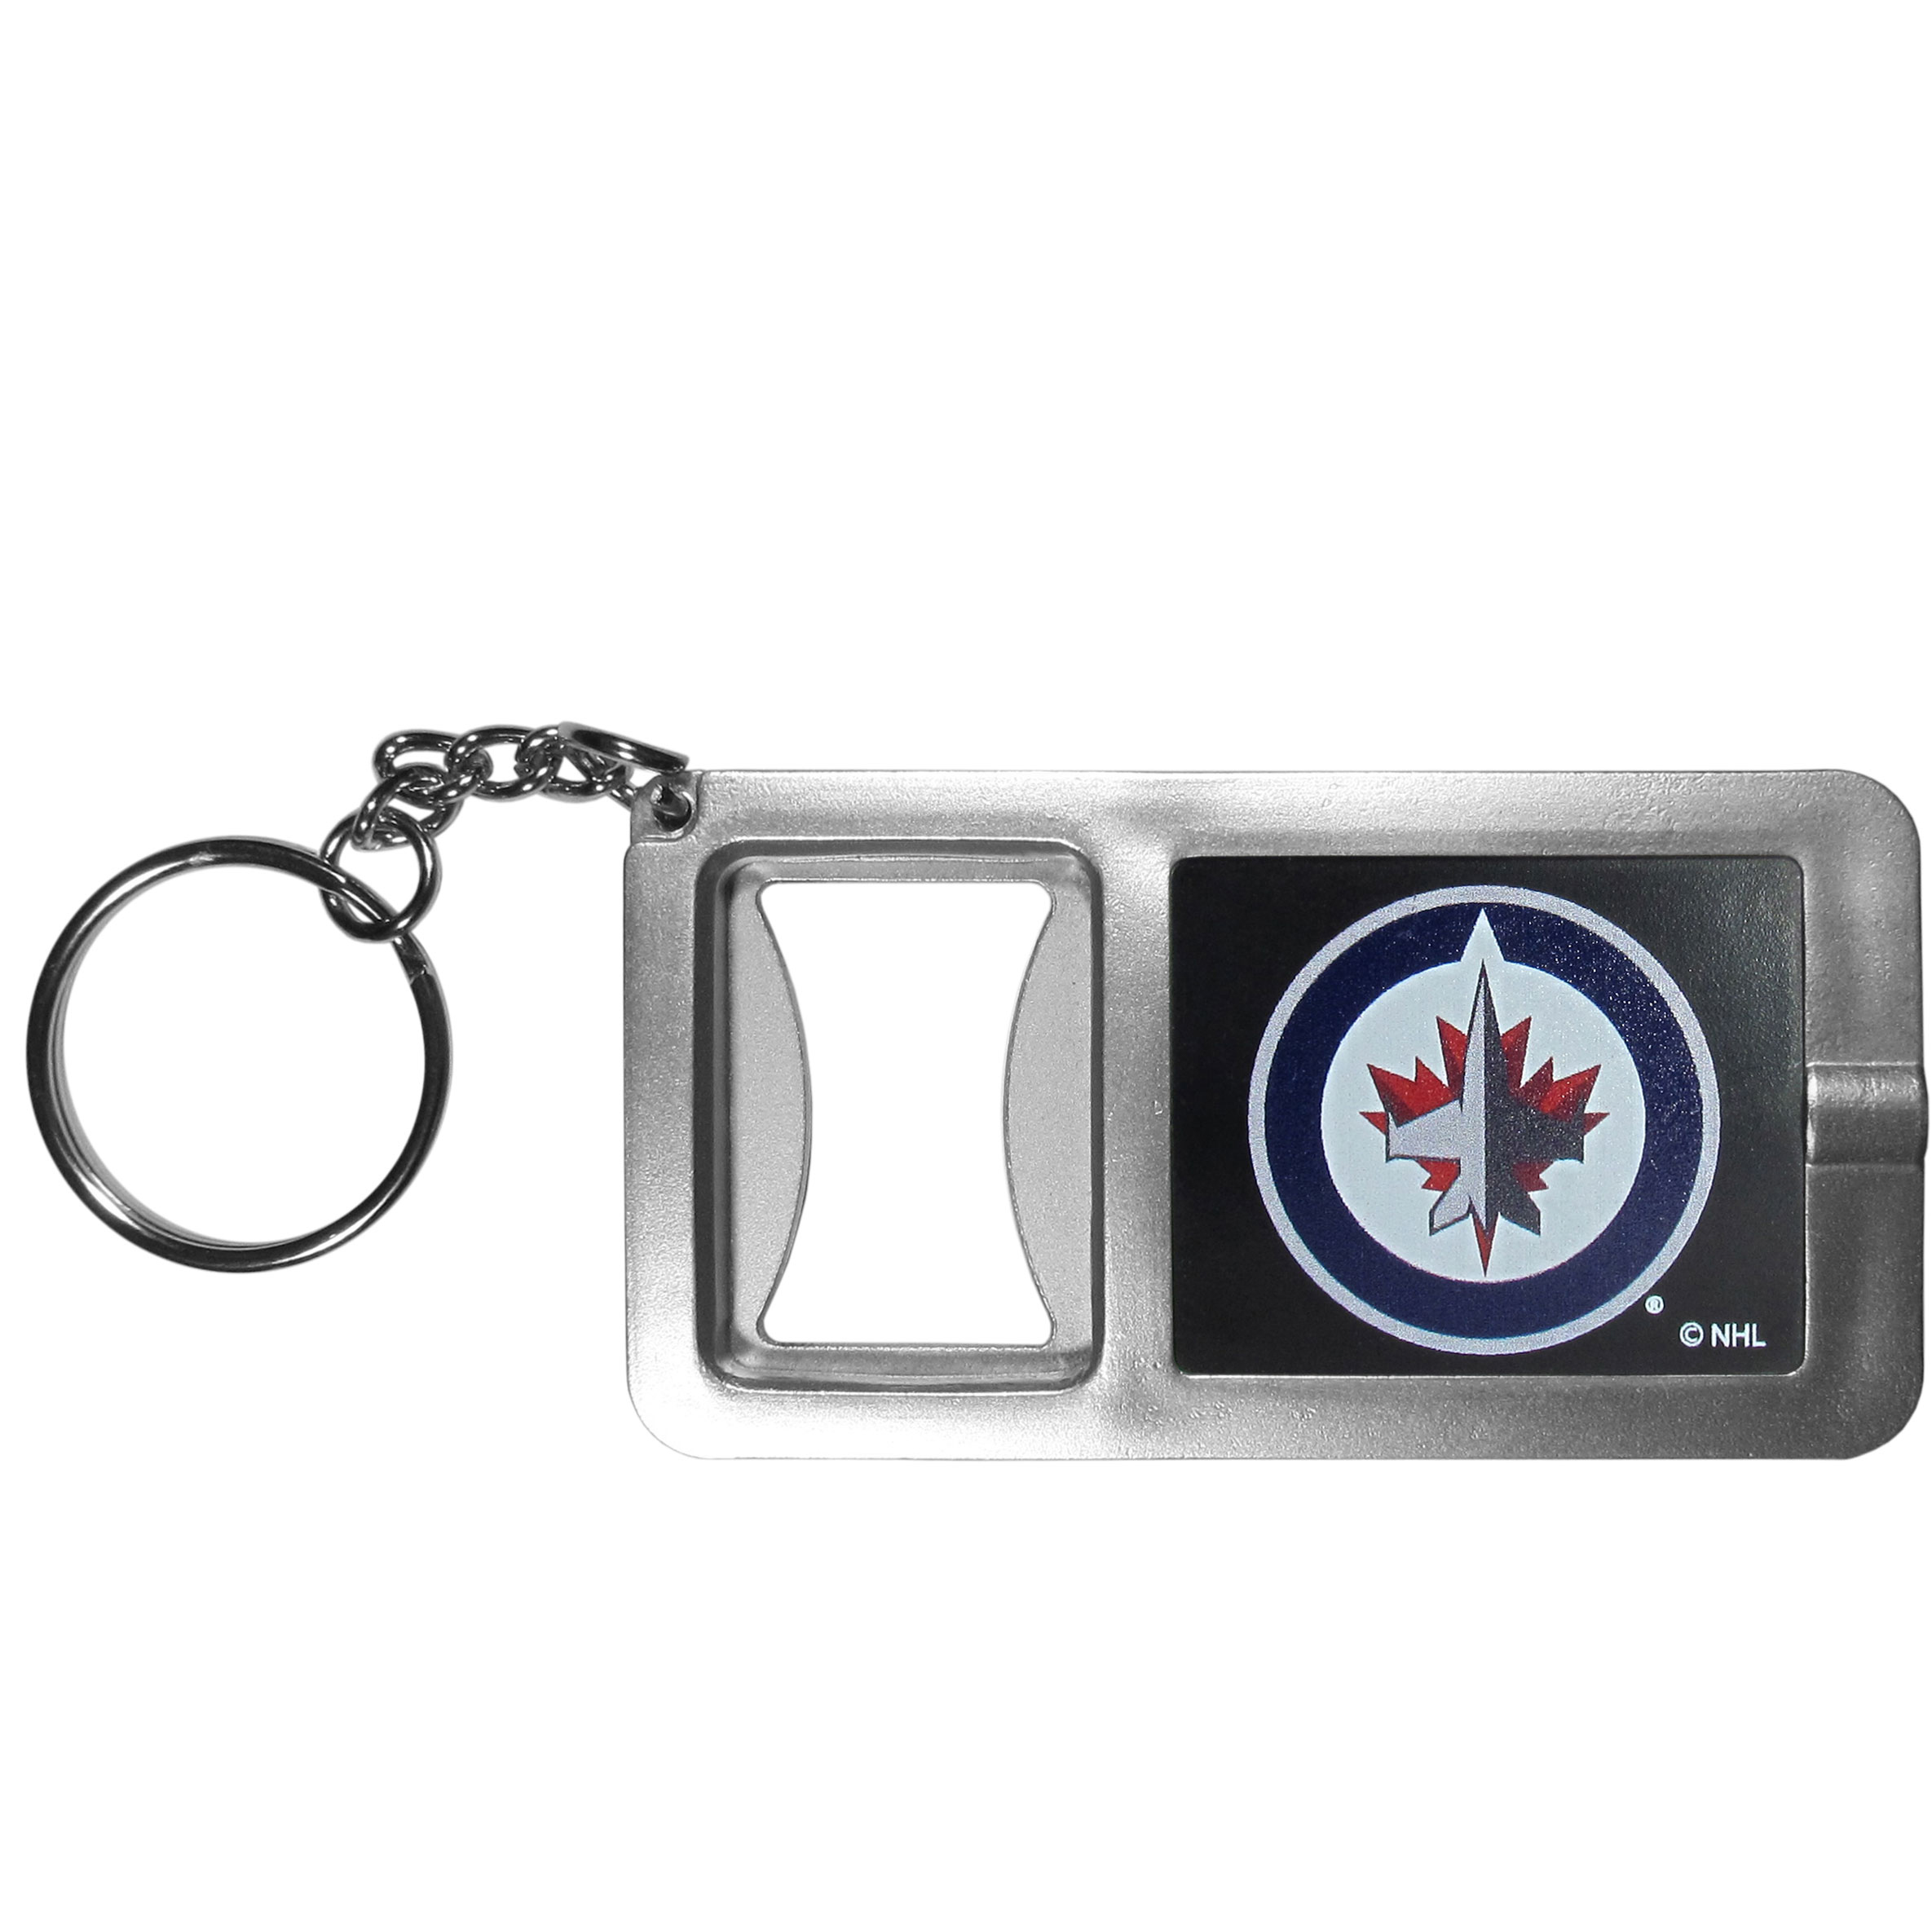 Winnipeg Jets™ Flashlight Key Chain with Bottle Opener - Never be without light with our Winnipeg Jets™ flashlight keychain that features a handy bottle opener feature. This versatile key chain is perfect for camping and travel and is a great way to show off your team pride!